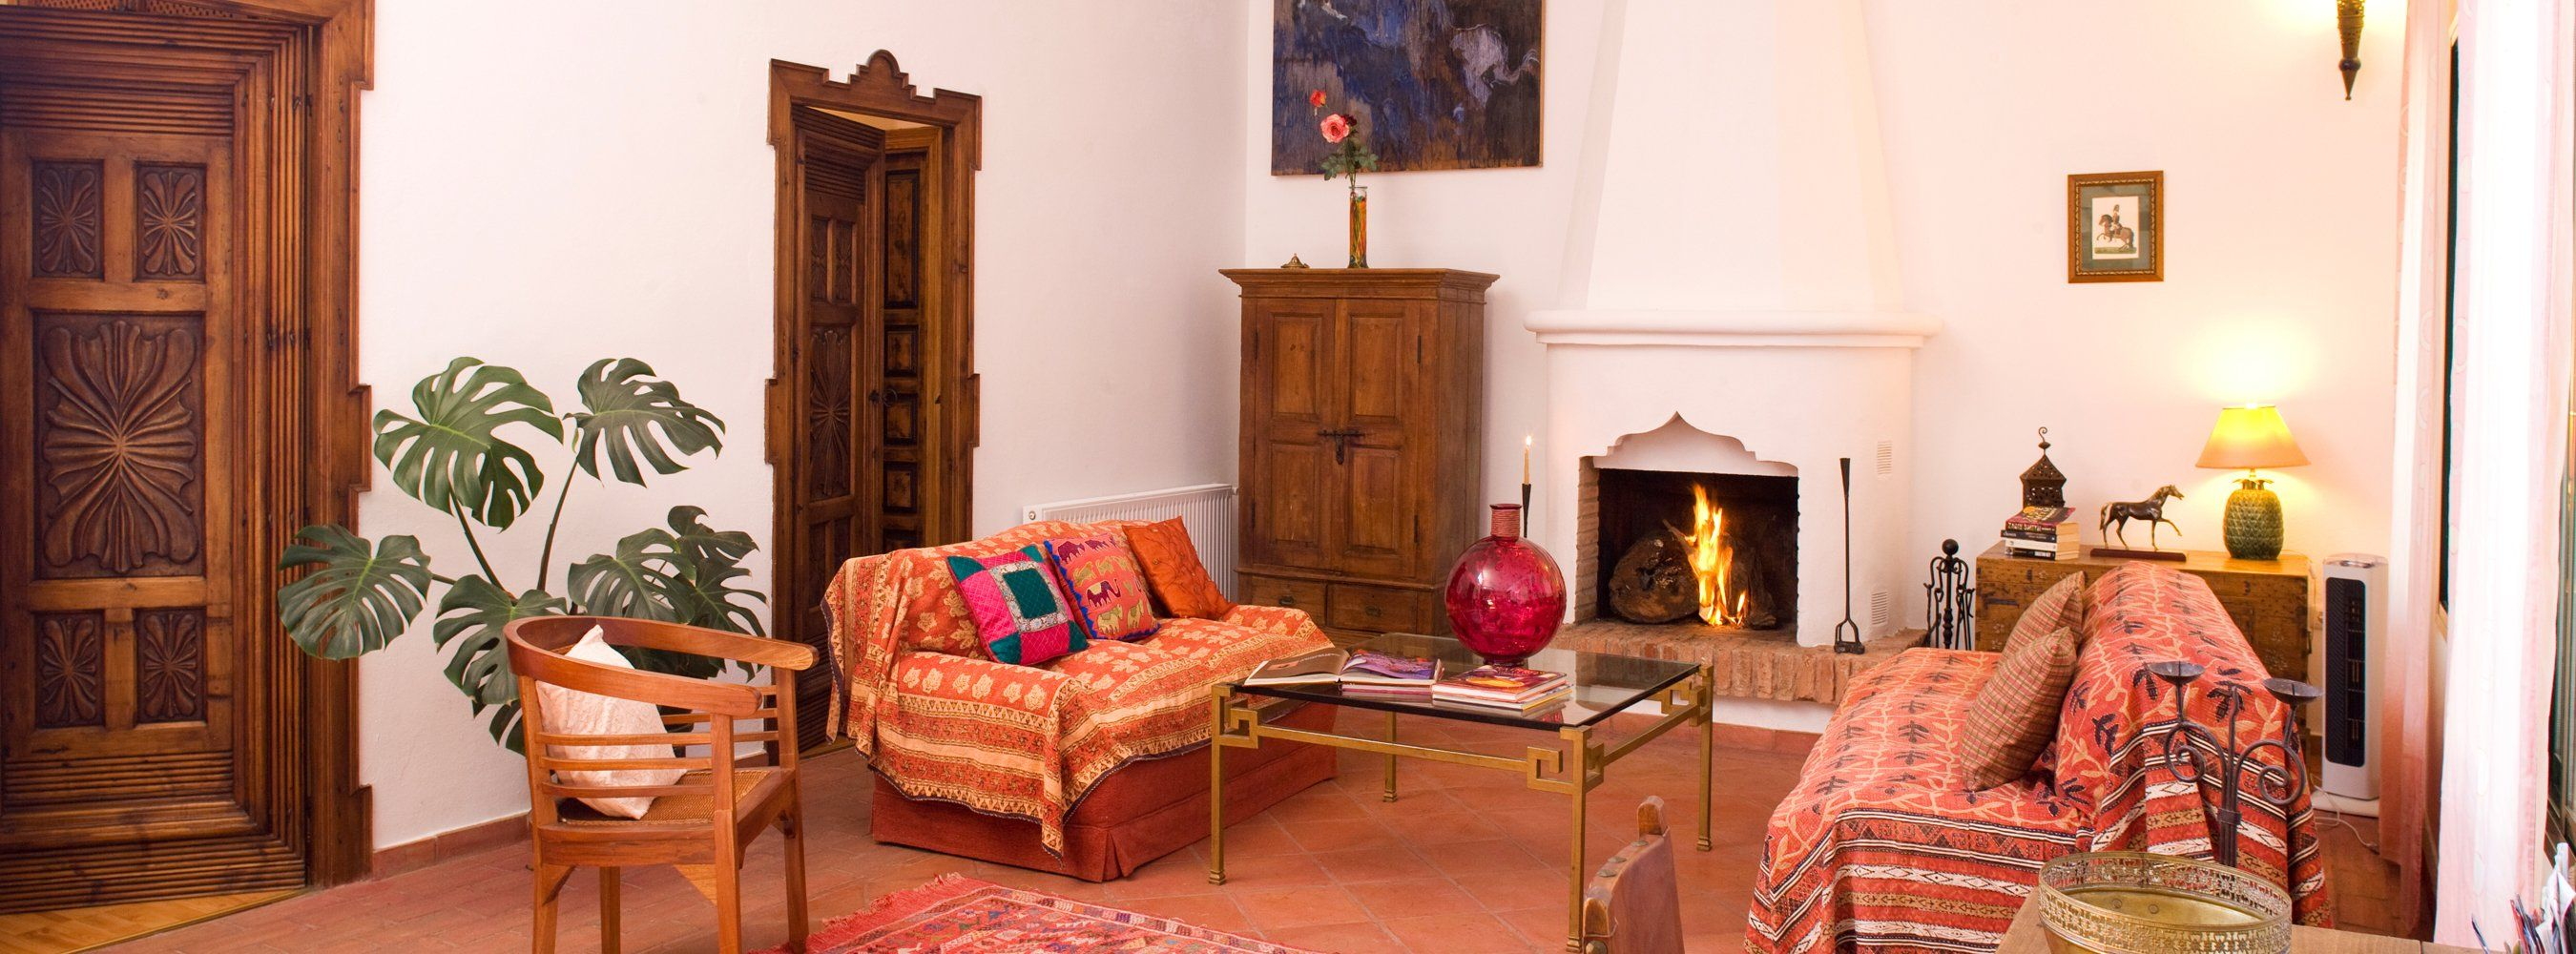 andalucian sitting room